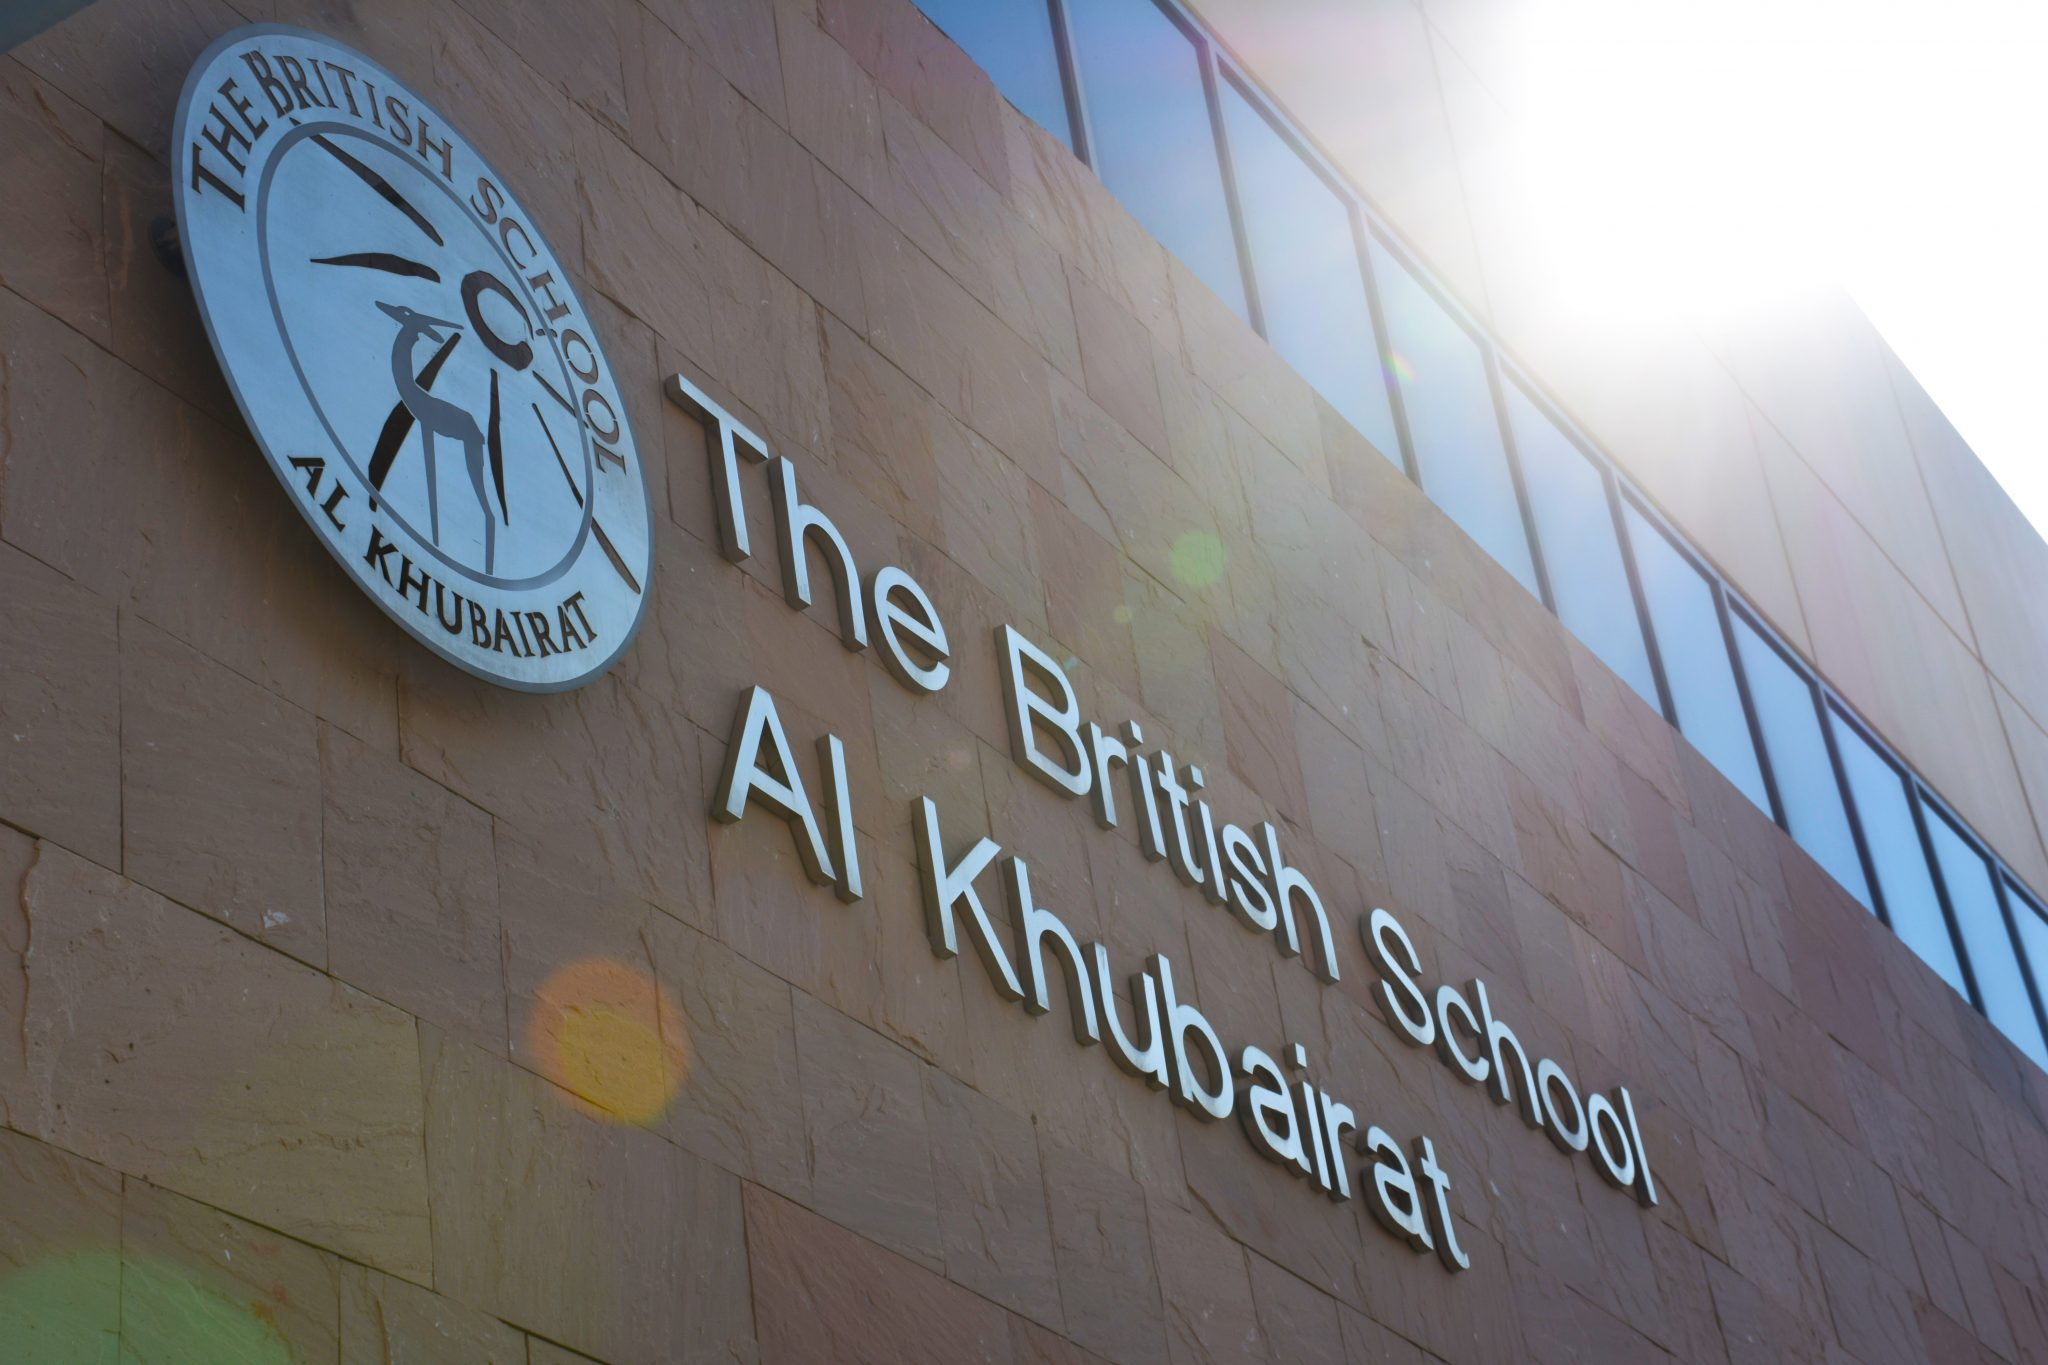 Front buildings of the British School Al Khubairat in Abu Dhabi